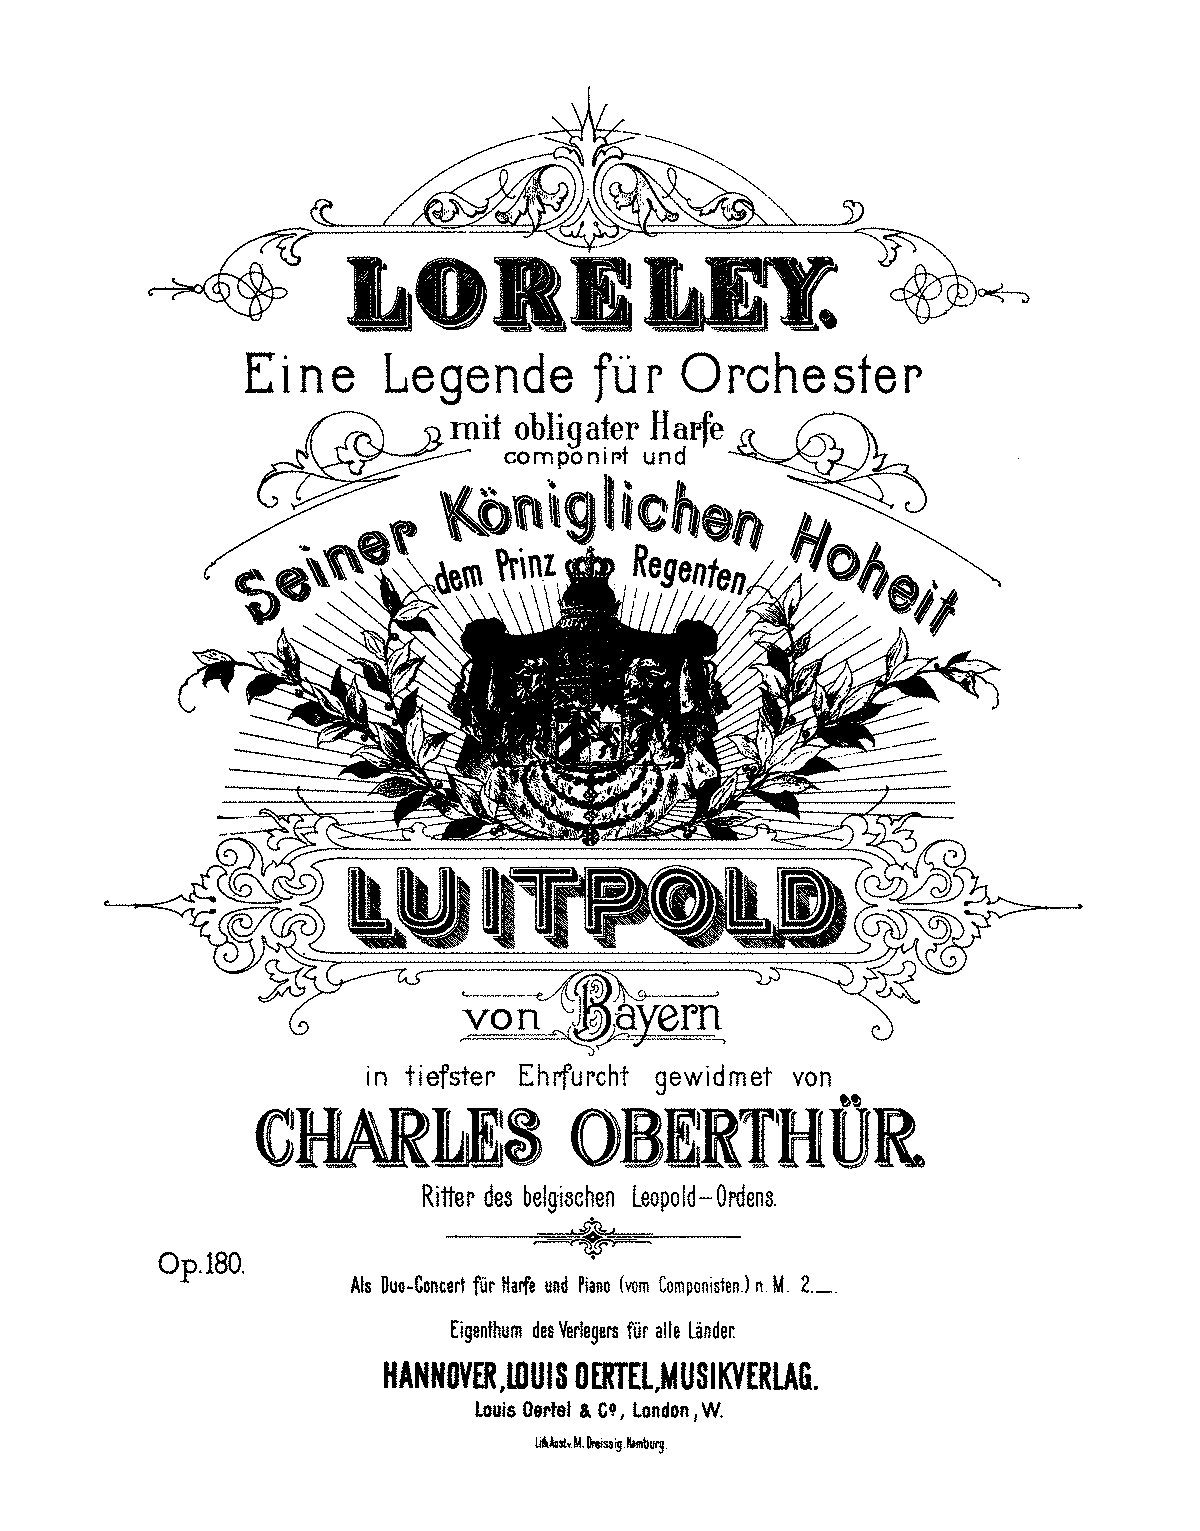 PMLP402475-COberthur Loreley, Op.180 harp part.pdf